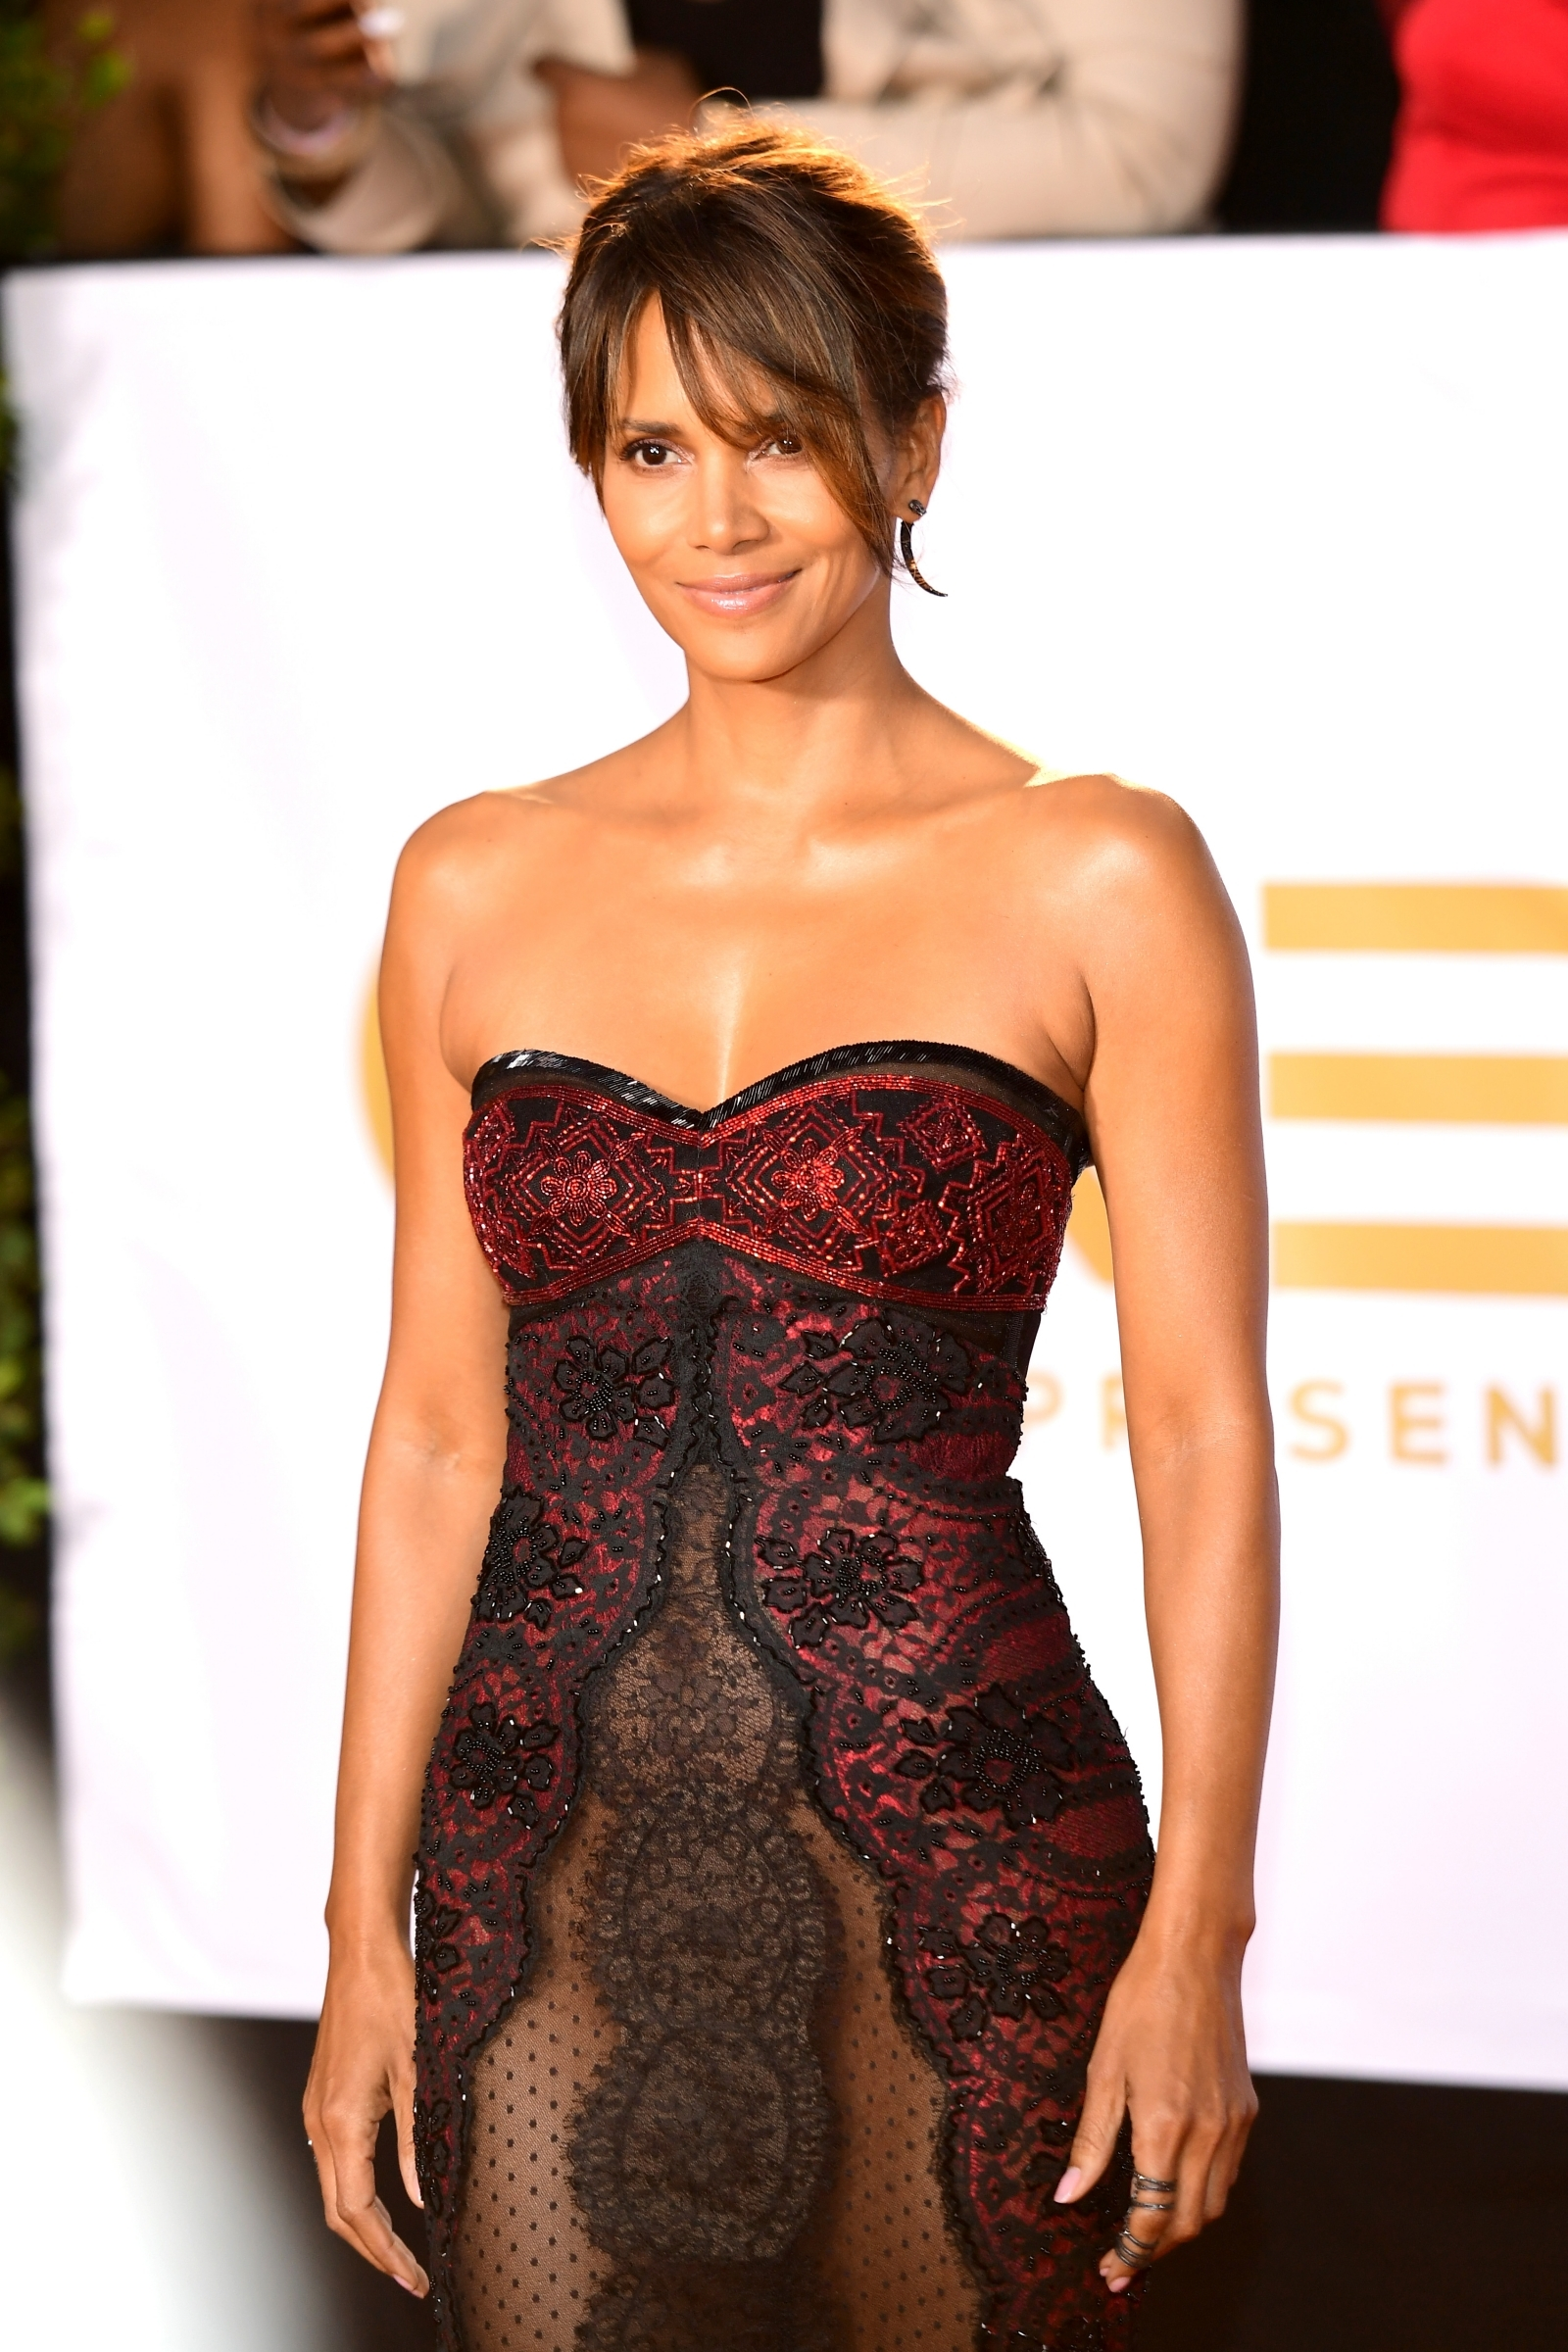 Halle Berry In Risqu 233 See Through Gown Poses For